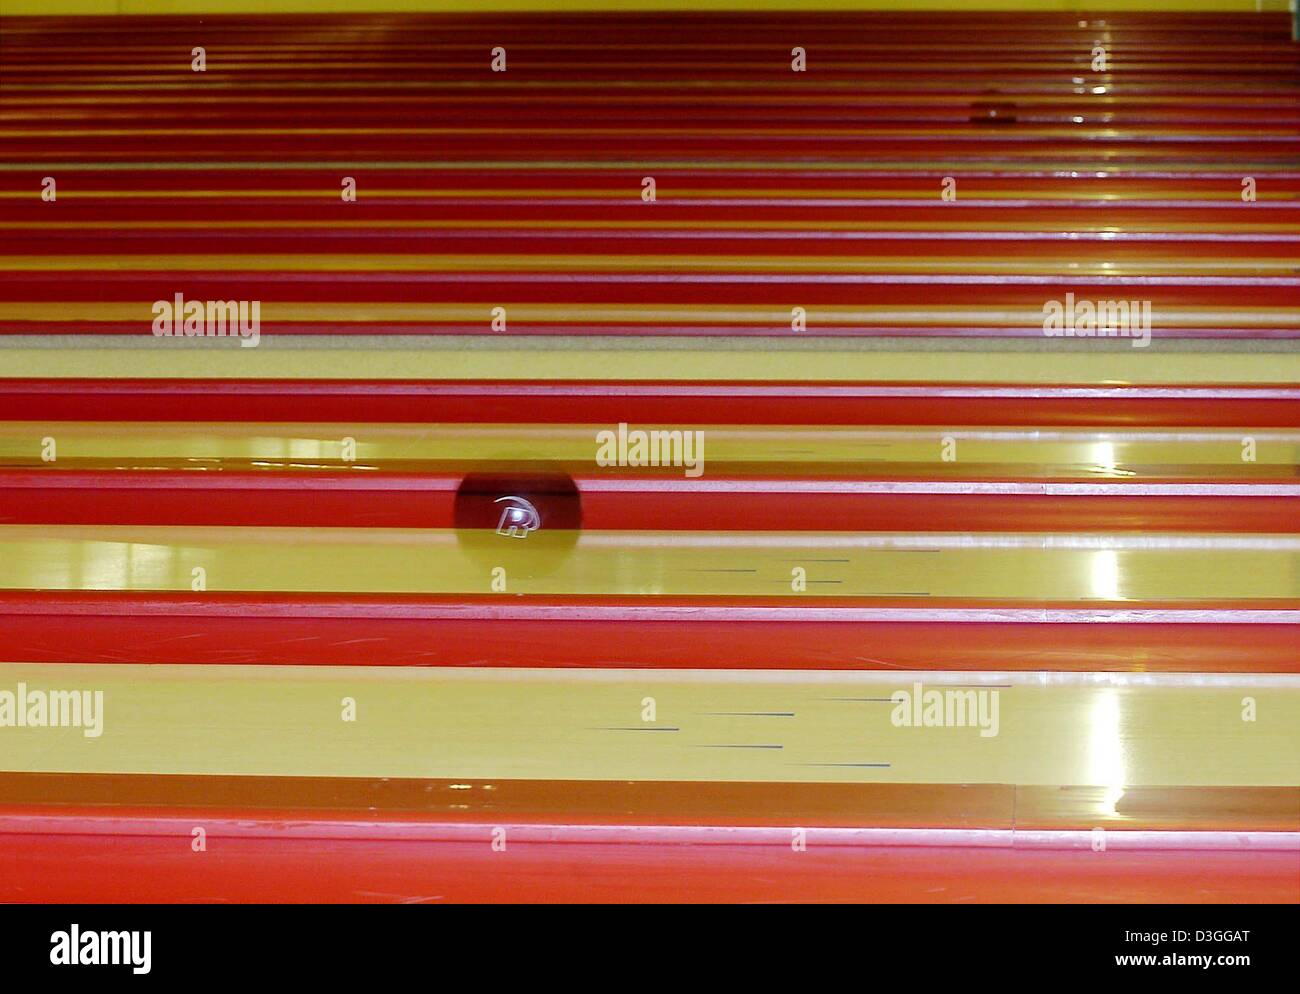 dpa) - A bowling ball rolls down the lane at a bowling alley in ...